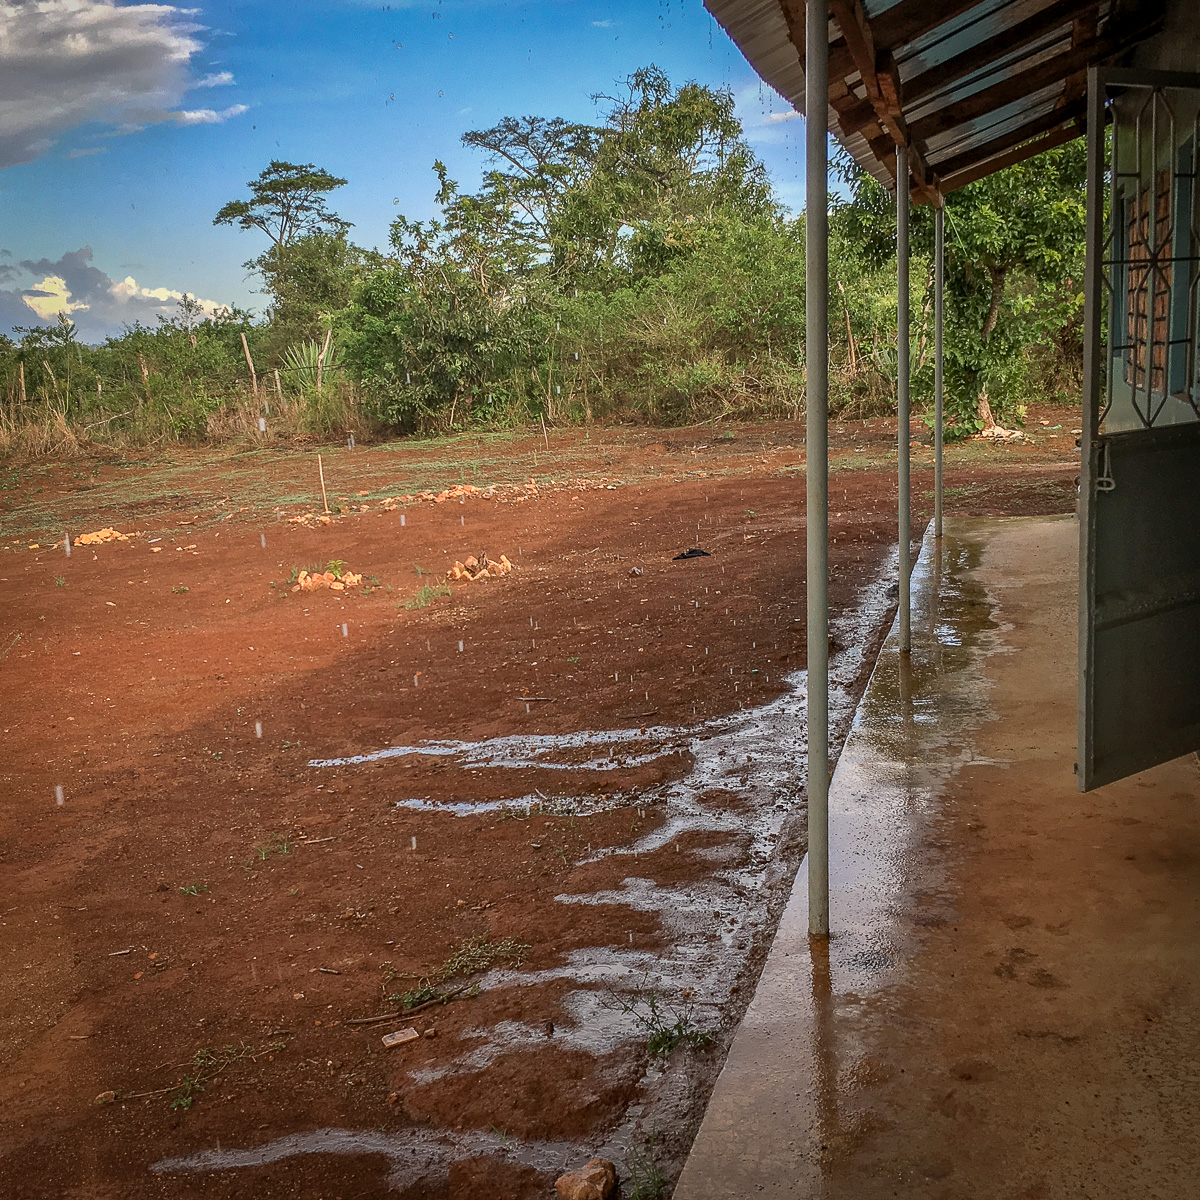 As you can see, there is barely any rain falling in Benaco. Although the rainy season has begun in parts of Tanzania, it has not yet reached our little corner of the world...